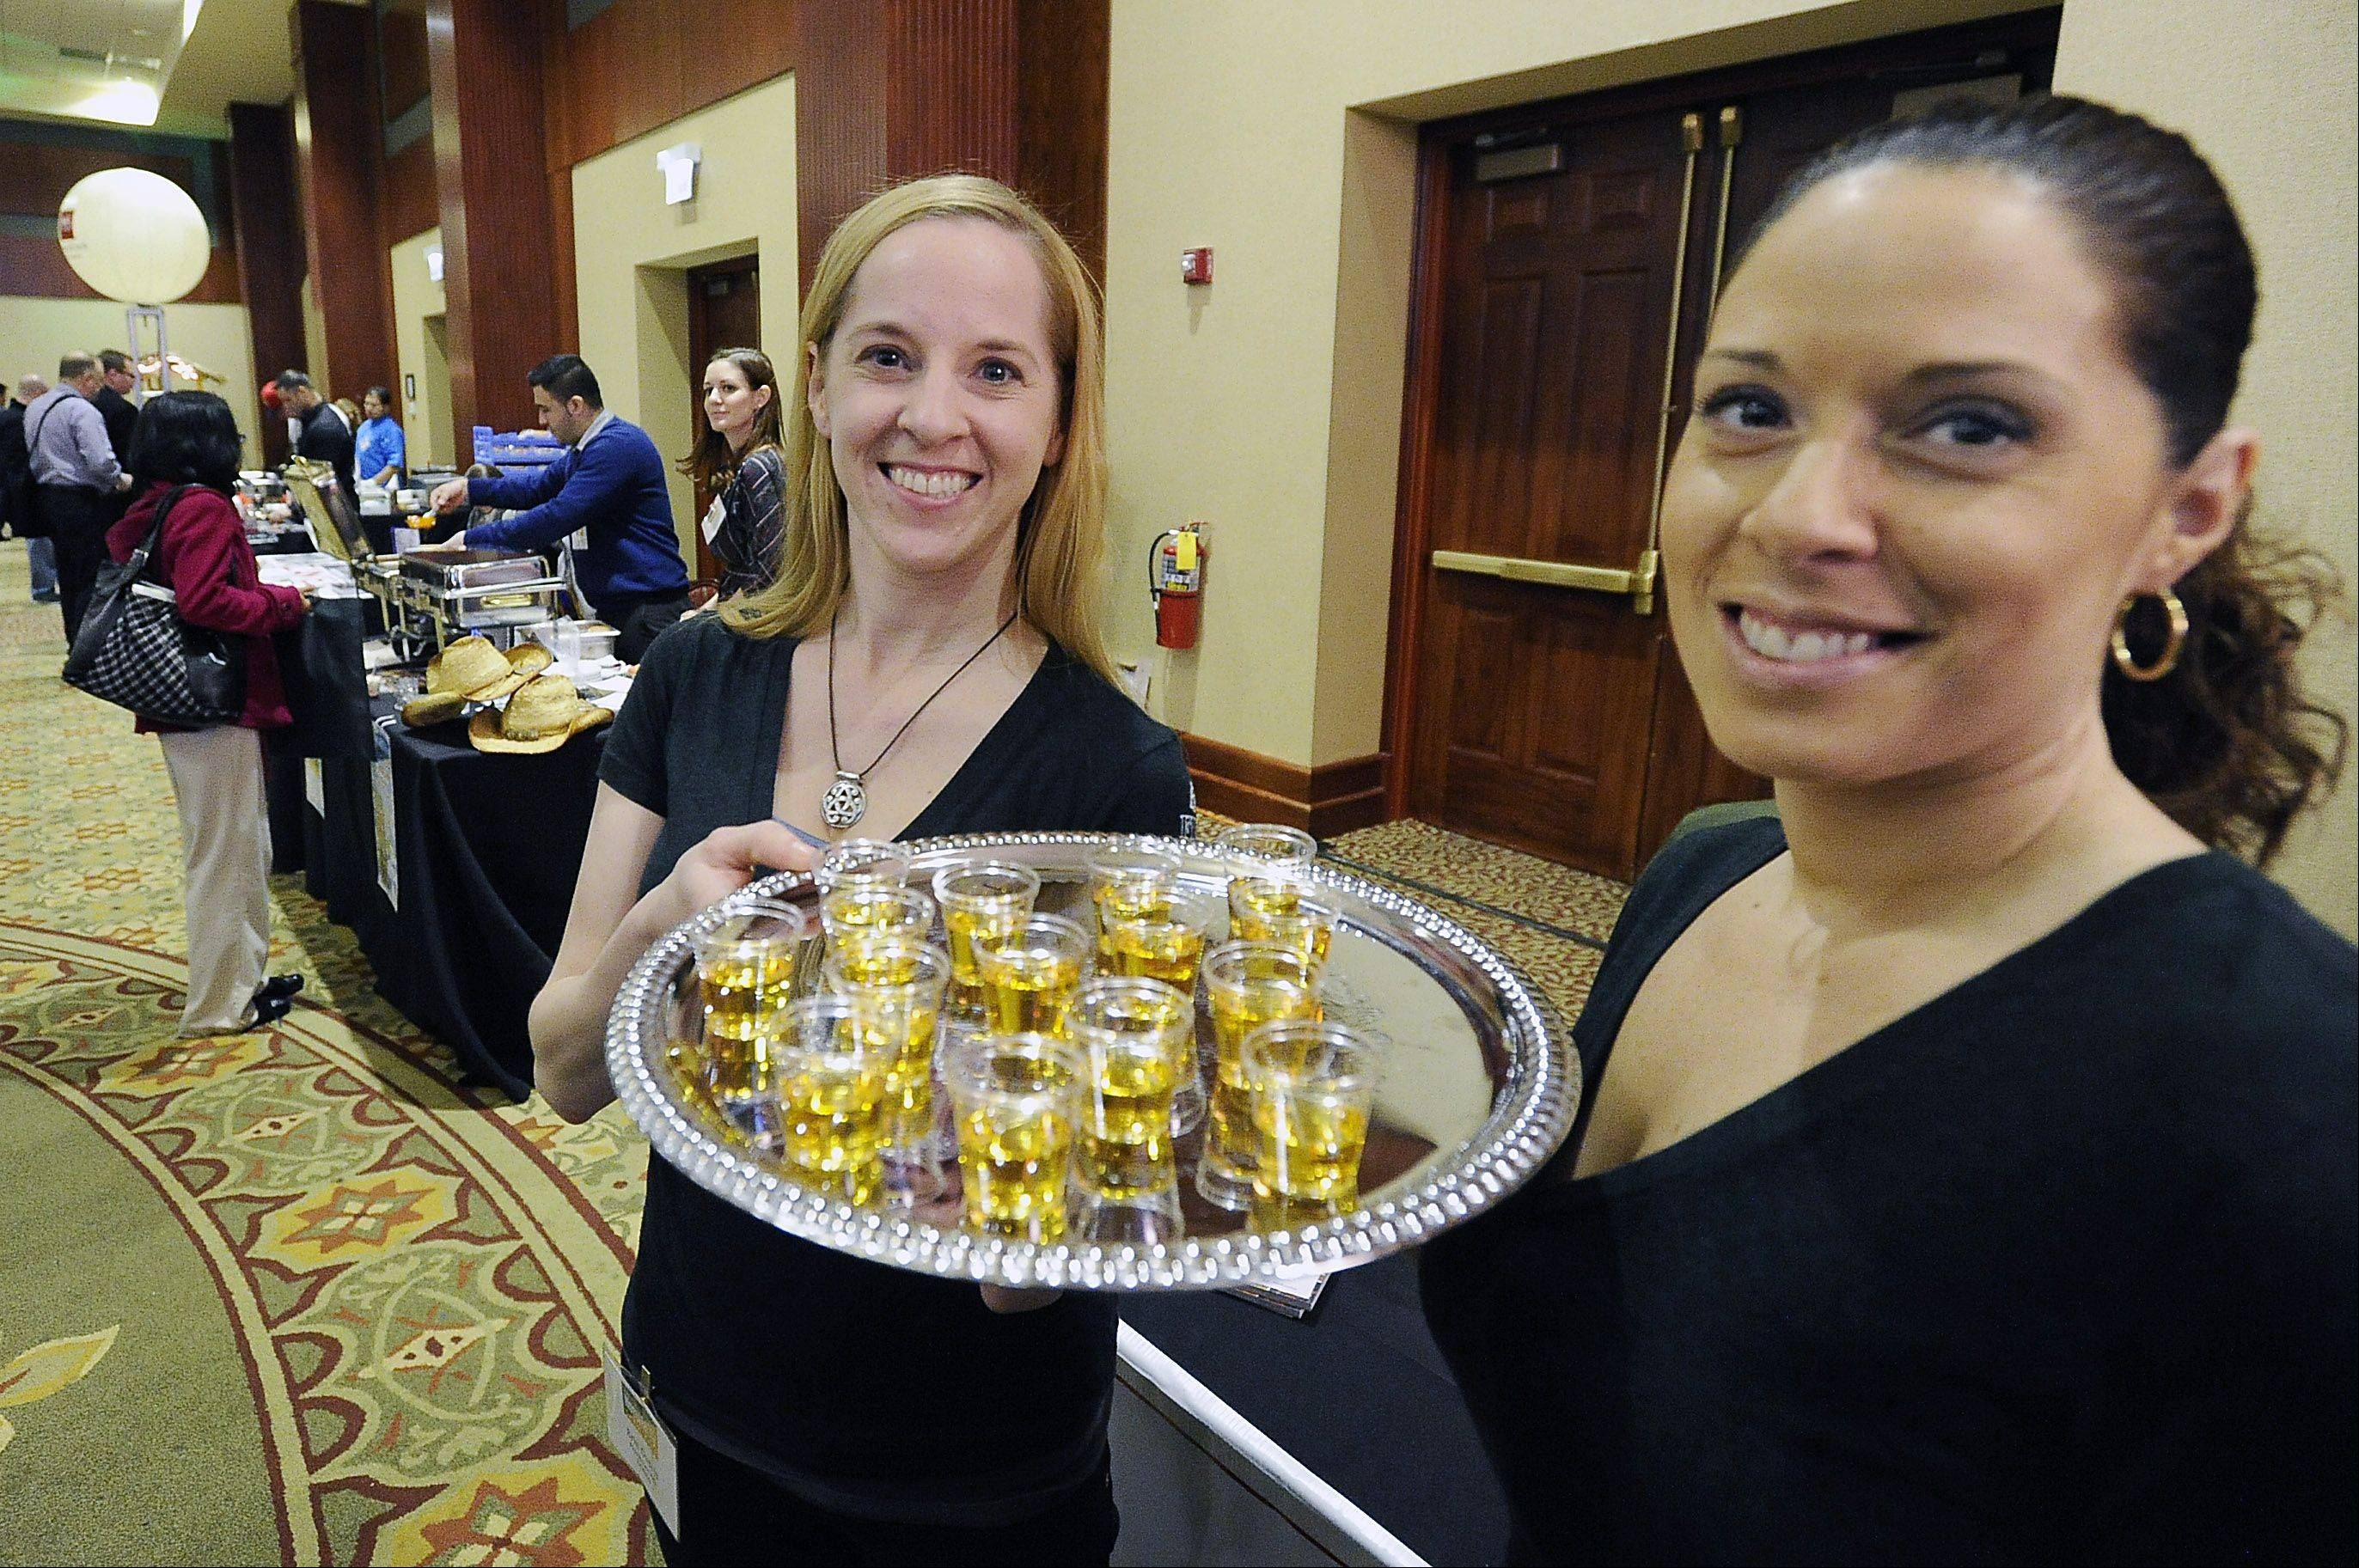 Erin Gussis and Deborah Guerrieri, sales managers at Five Roses Pub of Rosemont, hand out drink samples Thursday at Northwest Hospitality Expo 2013 at the Meadows Club in Rolling Meadows.